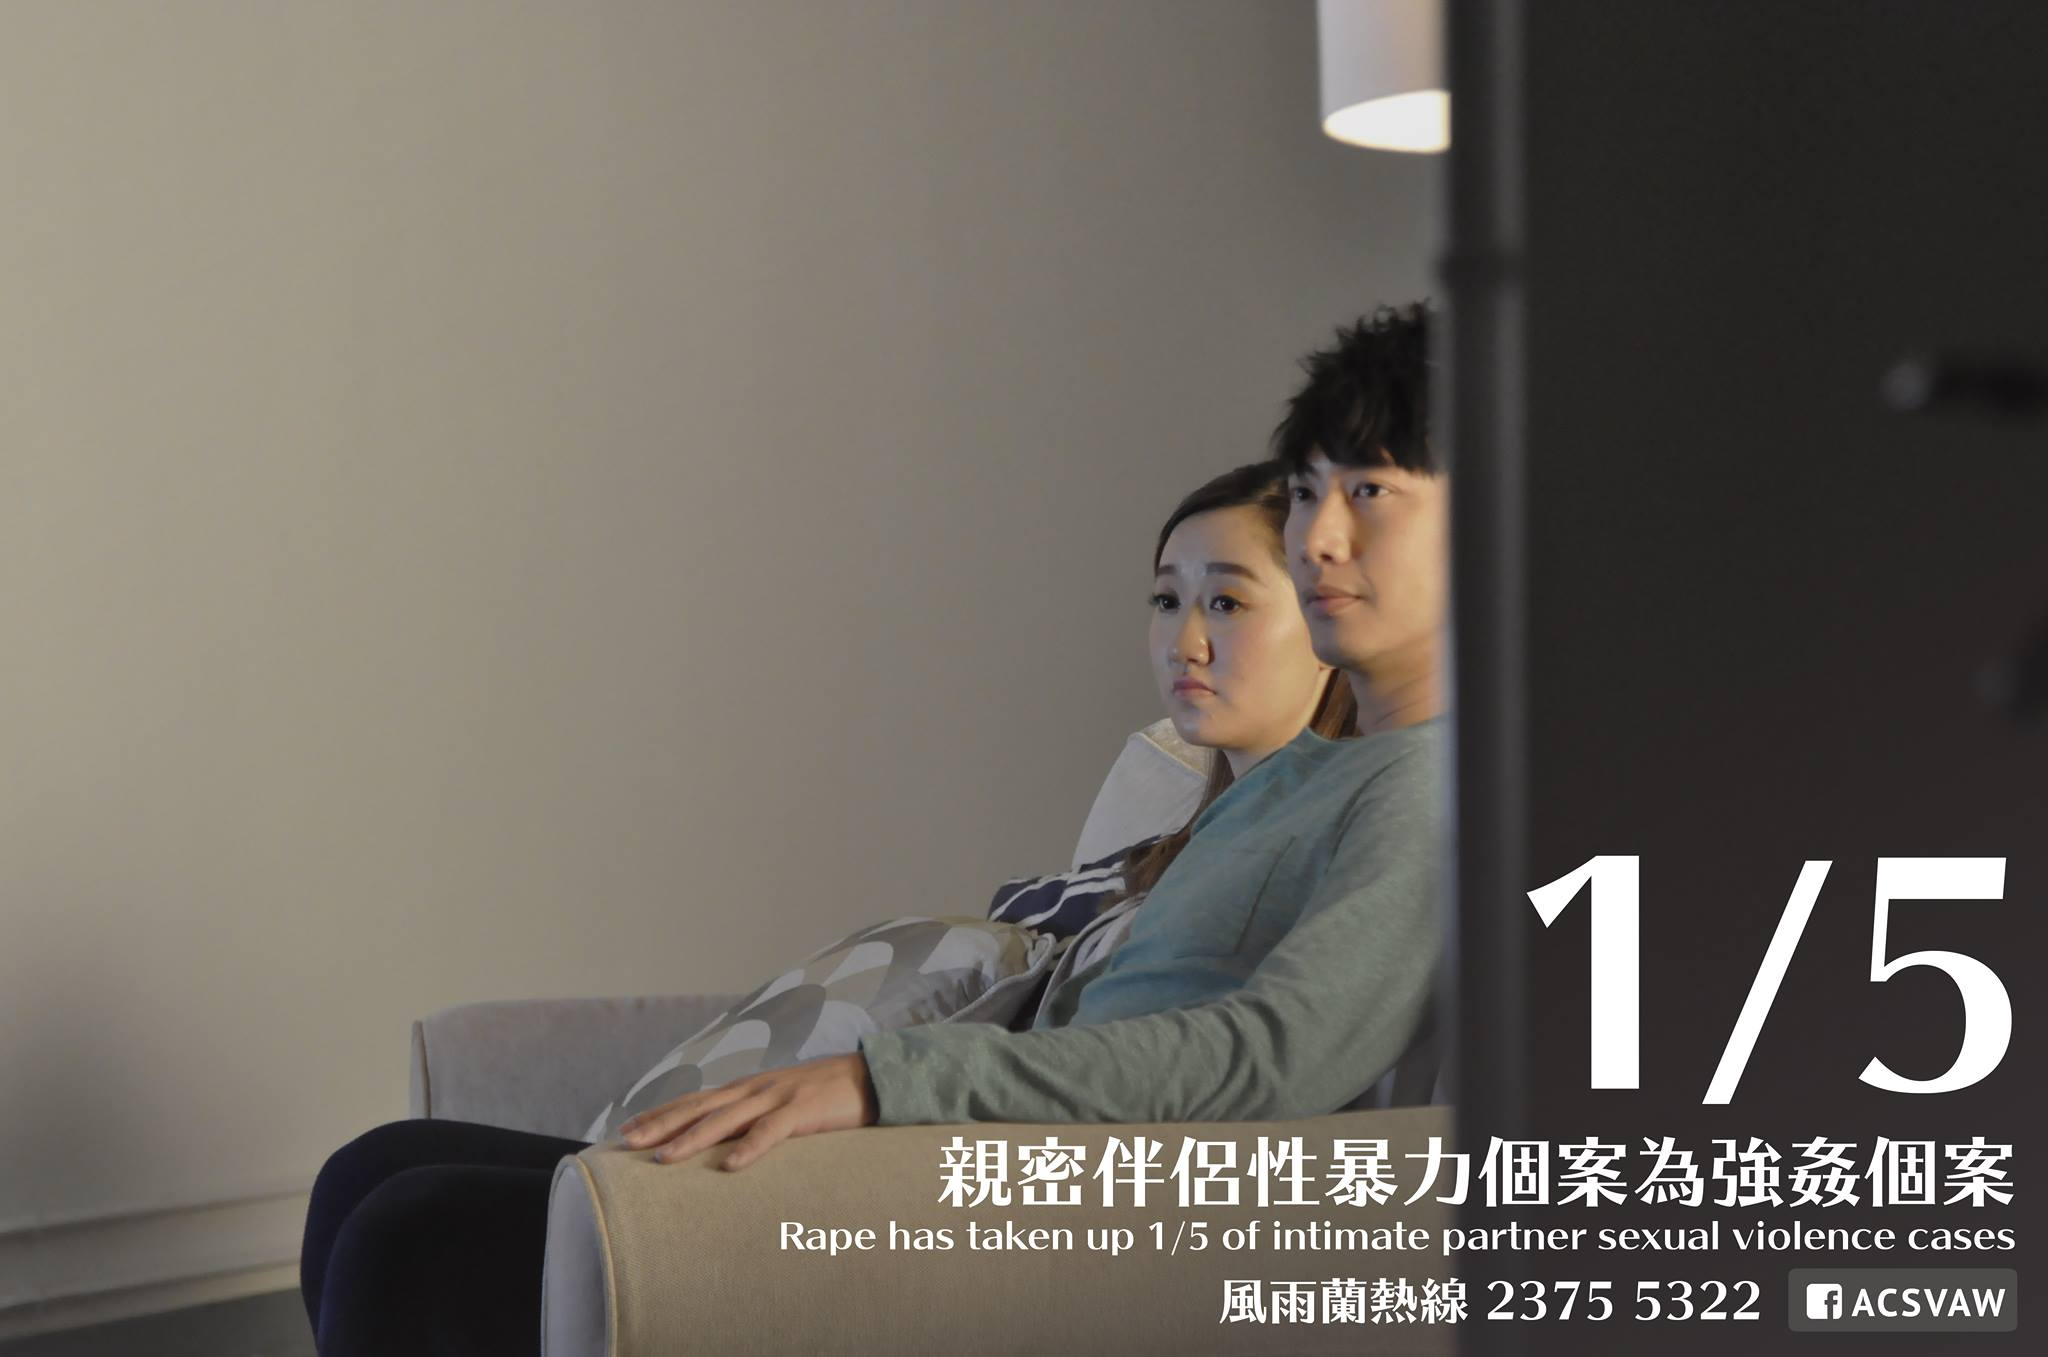 """""""Suffering from intimate partner sexual abuse. Put on a brave face for living"""" -The second story in RainLily's 'Best Actress' advert.  As defined by WHO, Intimate Partner Violence (IPV) includes physical violence, sexual violence, emotional abuse, and controlling behaviours. Rape has taken up 1/5 of intimate partner sexual violence cases (involving current or former intimate partner, such as spouse or boyfriend) according to latest statistics from RainLily."""